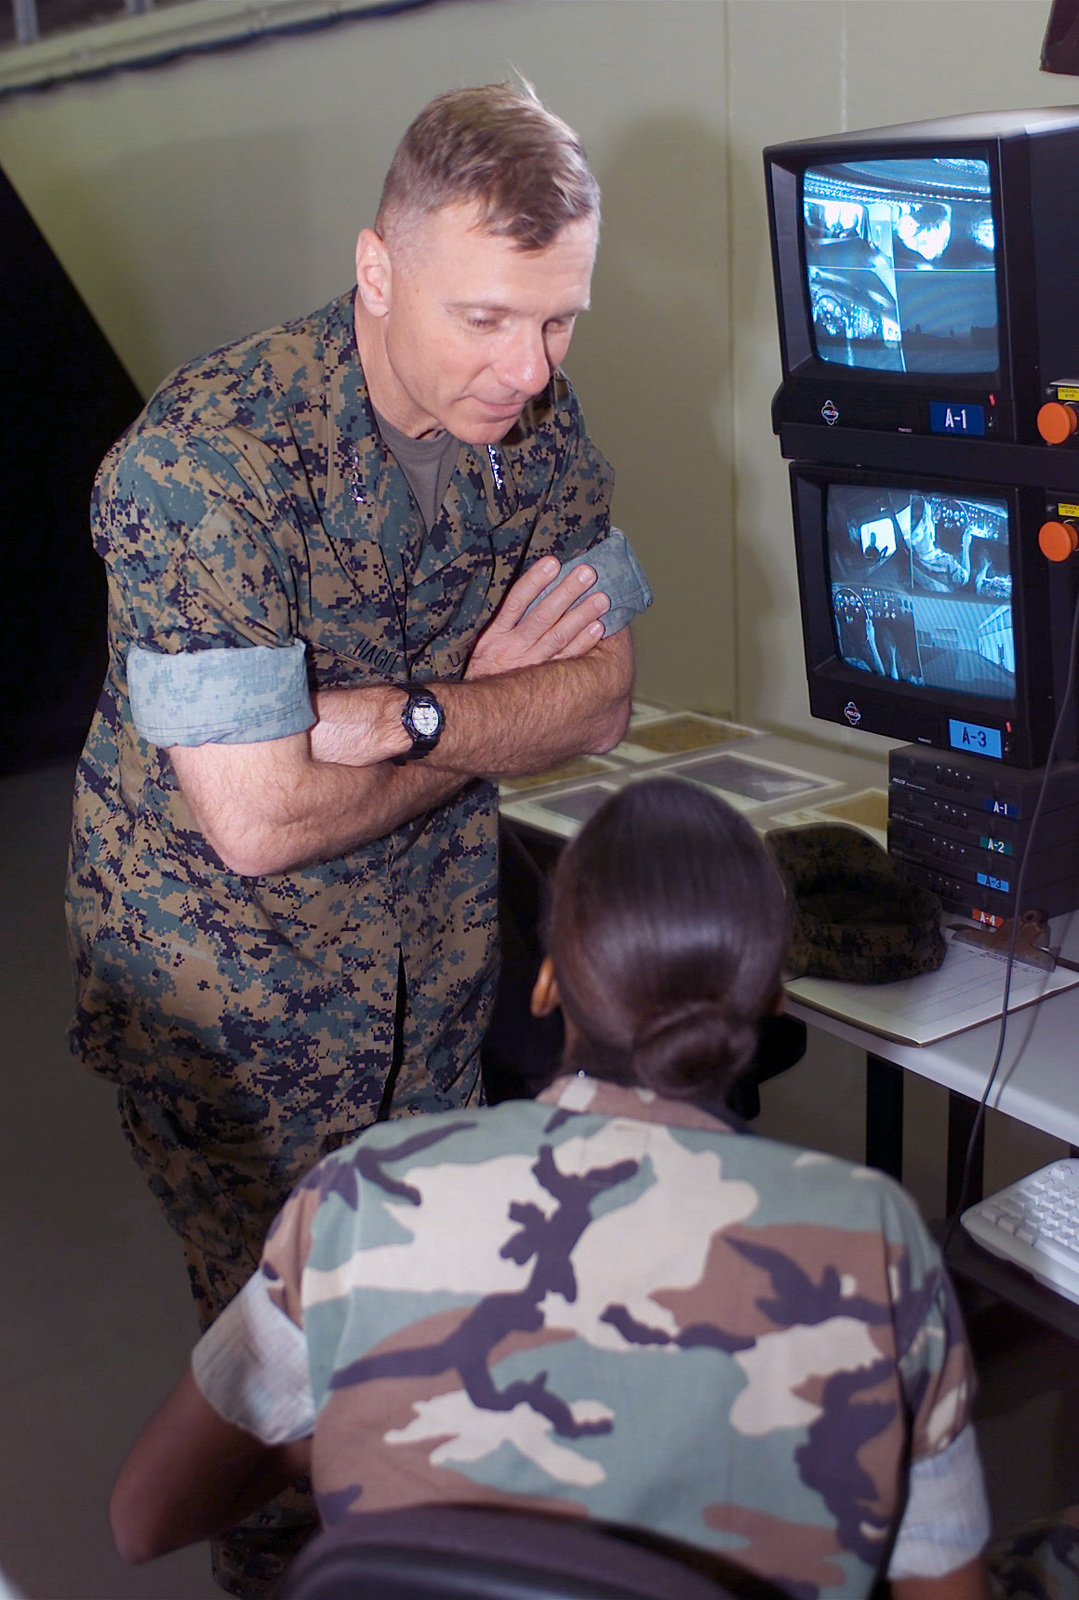 General (GEN) Michael W. Hagee, (right), Commandant of the Marine Corps (CMC), gets briefed by Corporal (CPL) Amina Welch, dispatcher, on the adventures that Marines have while in training in the Medium Tactical Vehicle Replacement-Training System. The simulator trains Marines in a variety of situations encountered driving the Medium Tactical Vehicle Replacement (MTVR) in the Okinawa area. GEN Hagee visited the III Marine Expeditionary Force (MEF) for the first time as the CMC, during his visit he will tour bases located on Okinawa, Japan